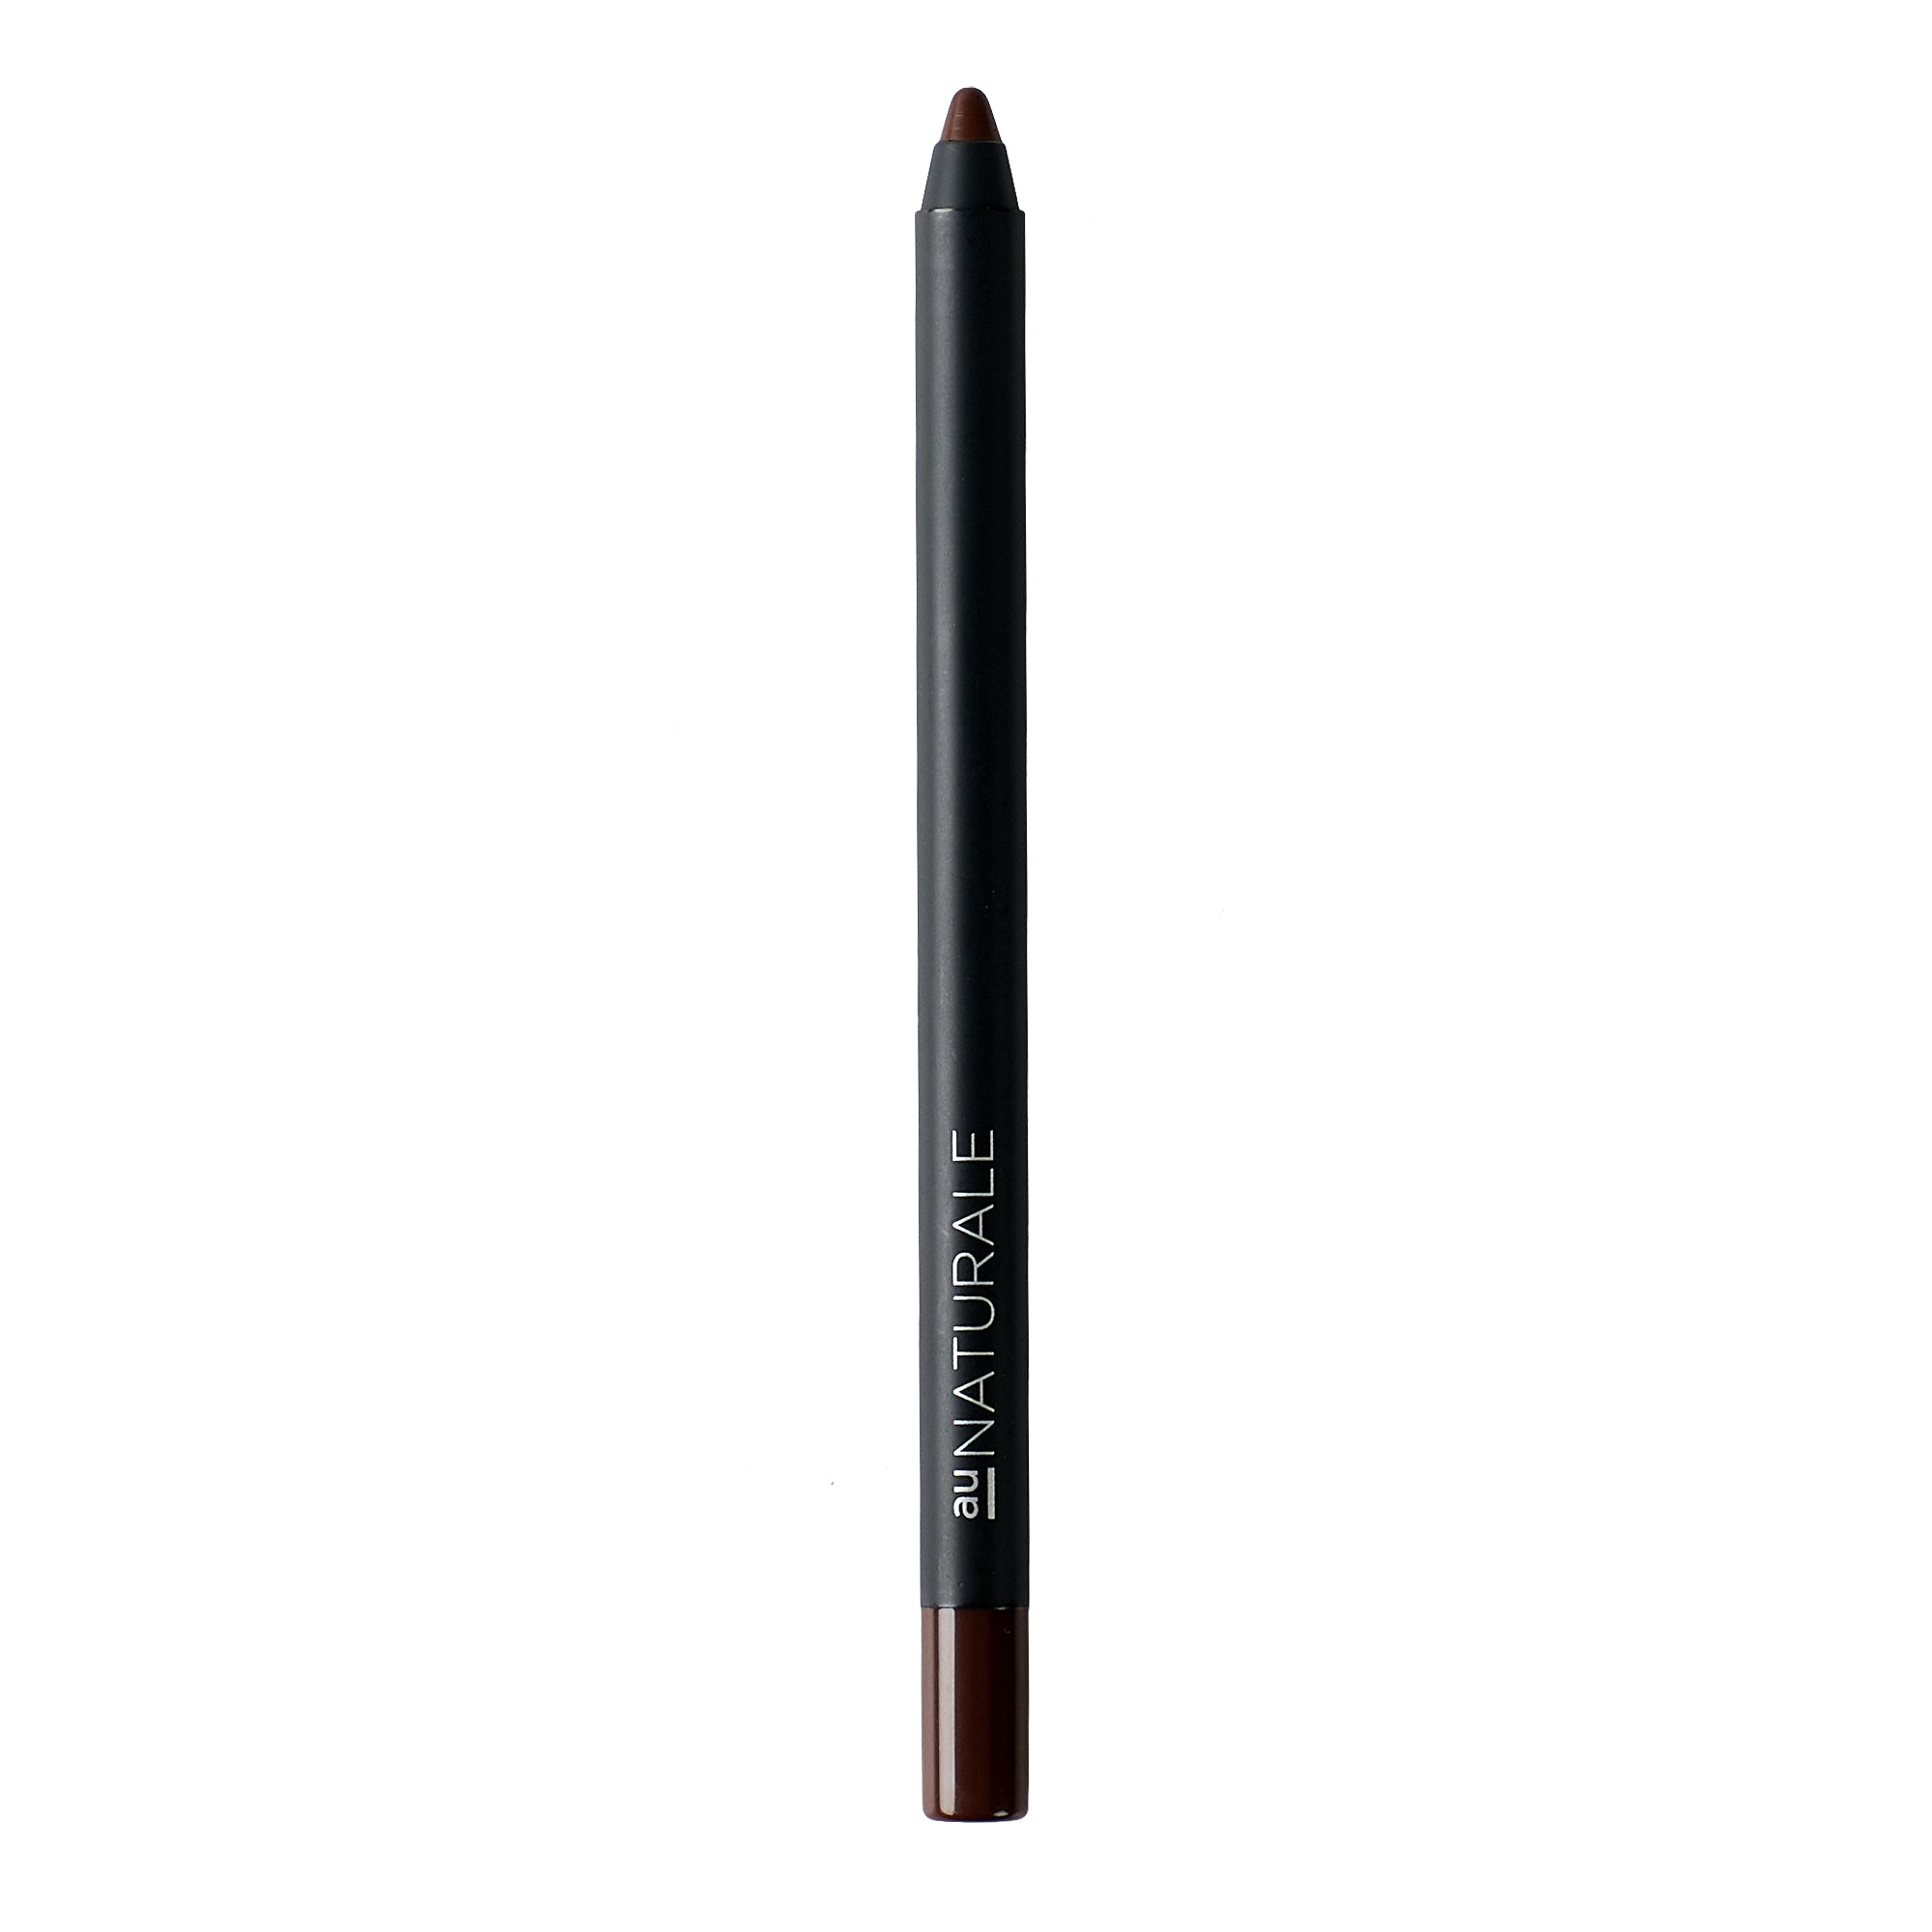 Brow Boss Organic Pencil *REFORMULATING - BE BACK SOON*